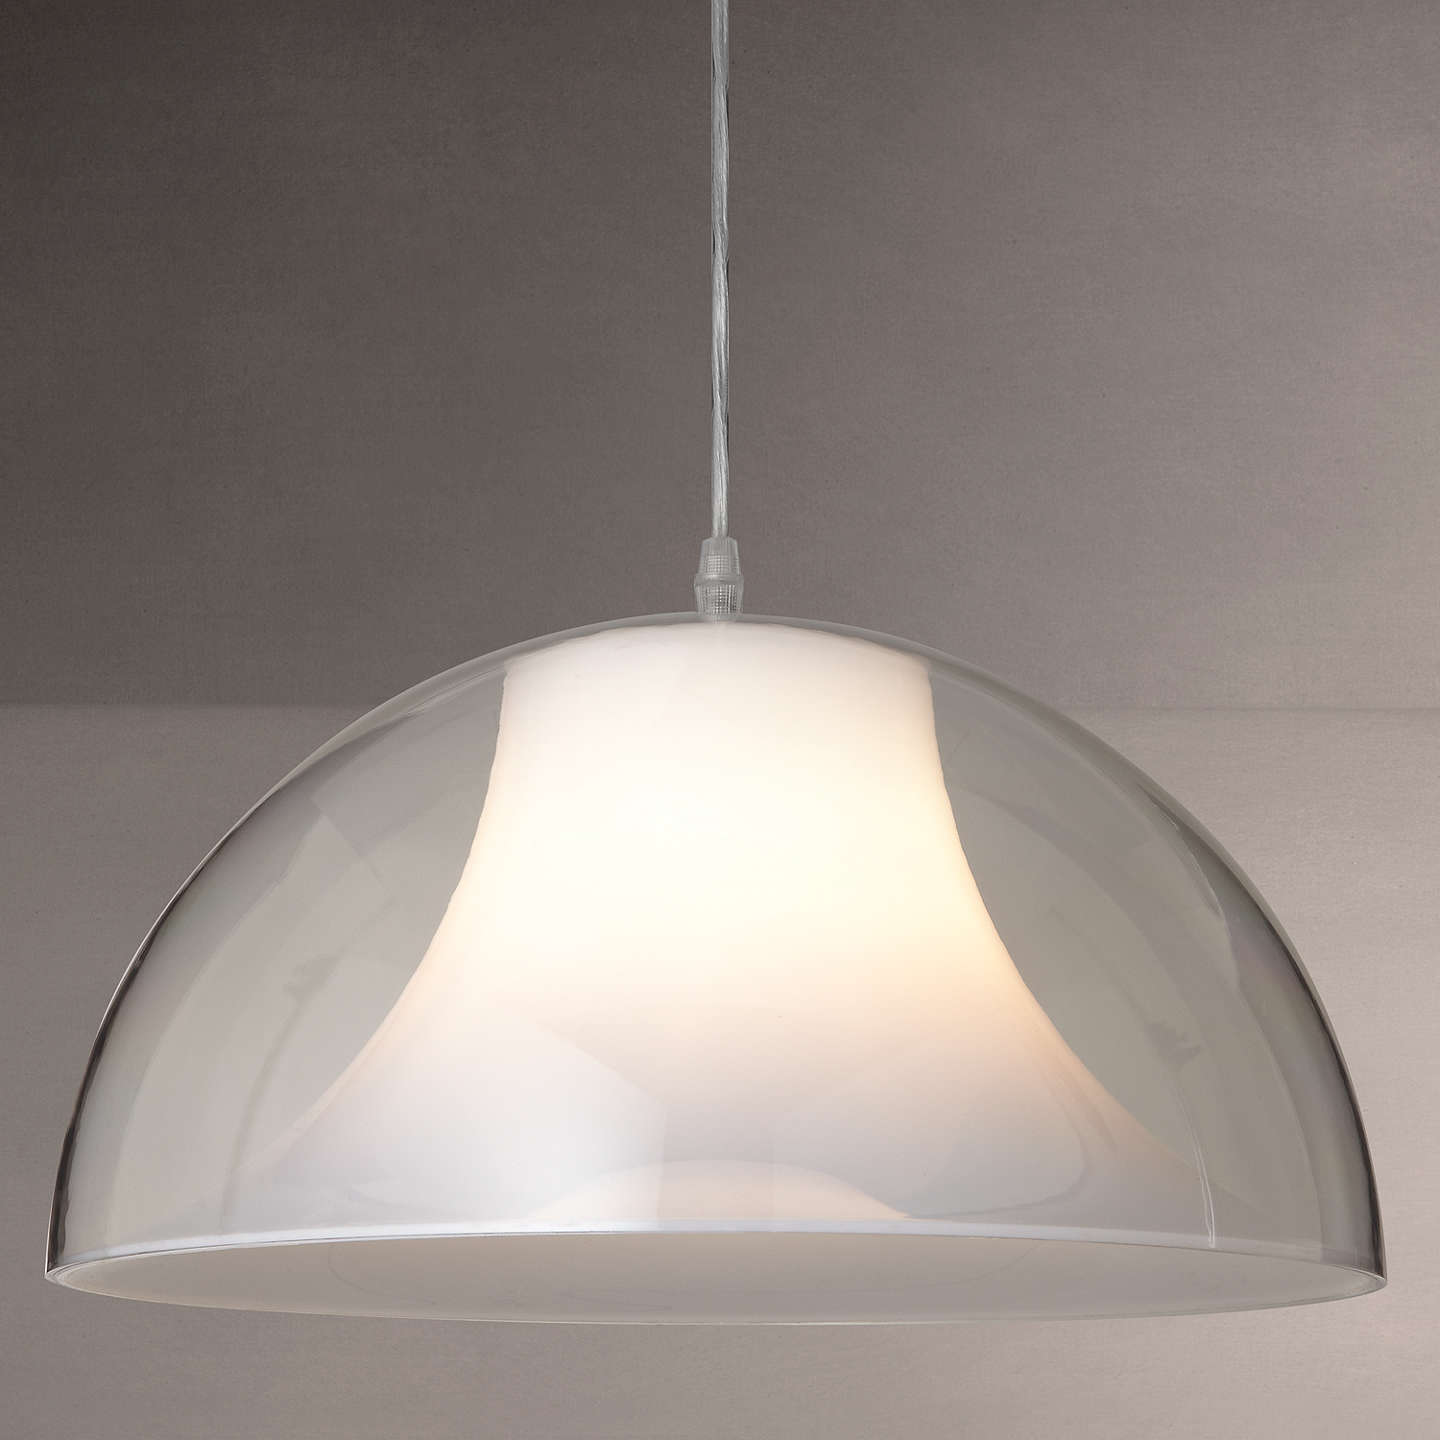 for light dome pendant hans by jakobsson markaryd agne